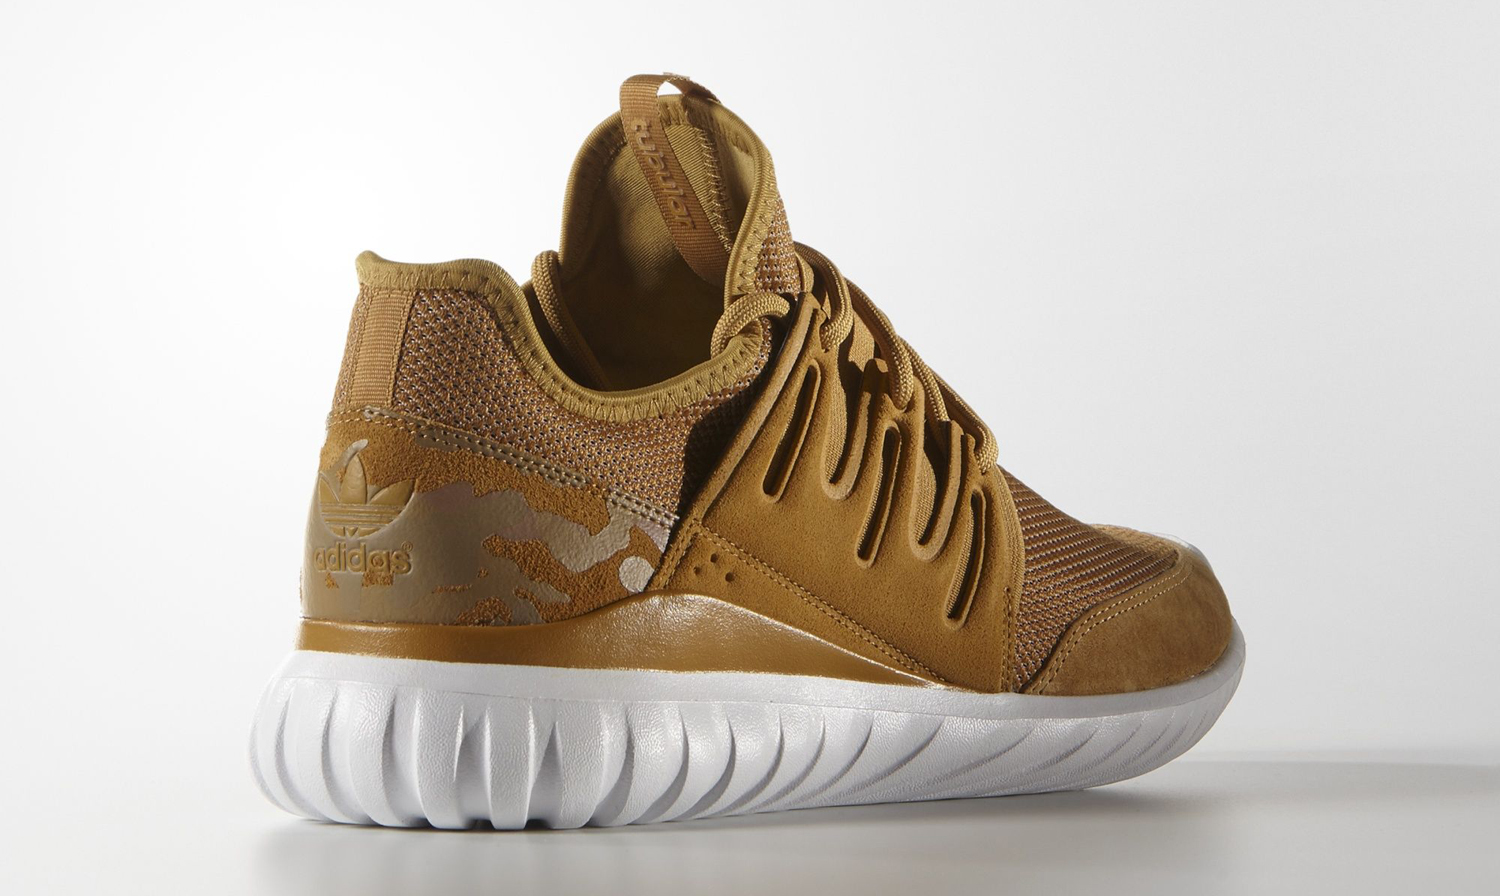 Adidas Tubular Wheat Color